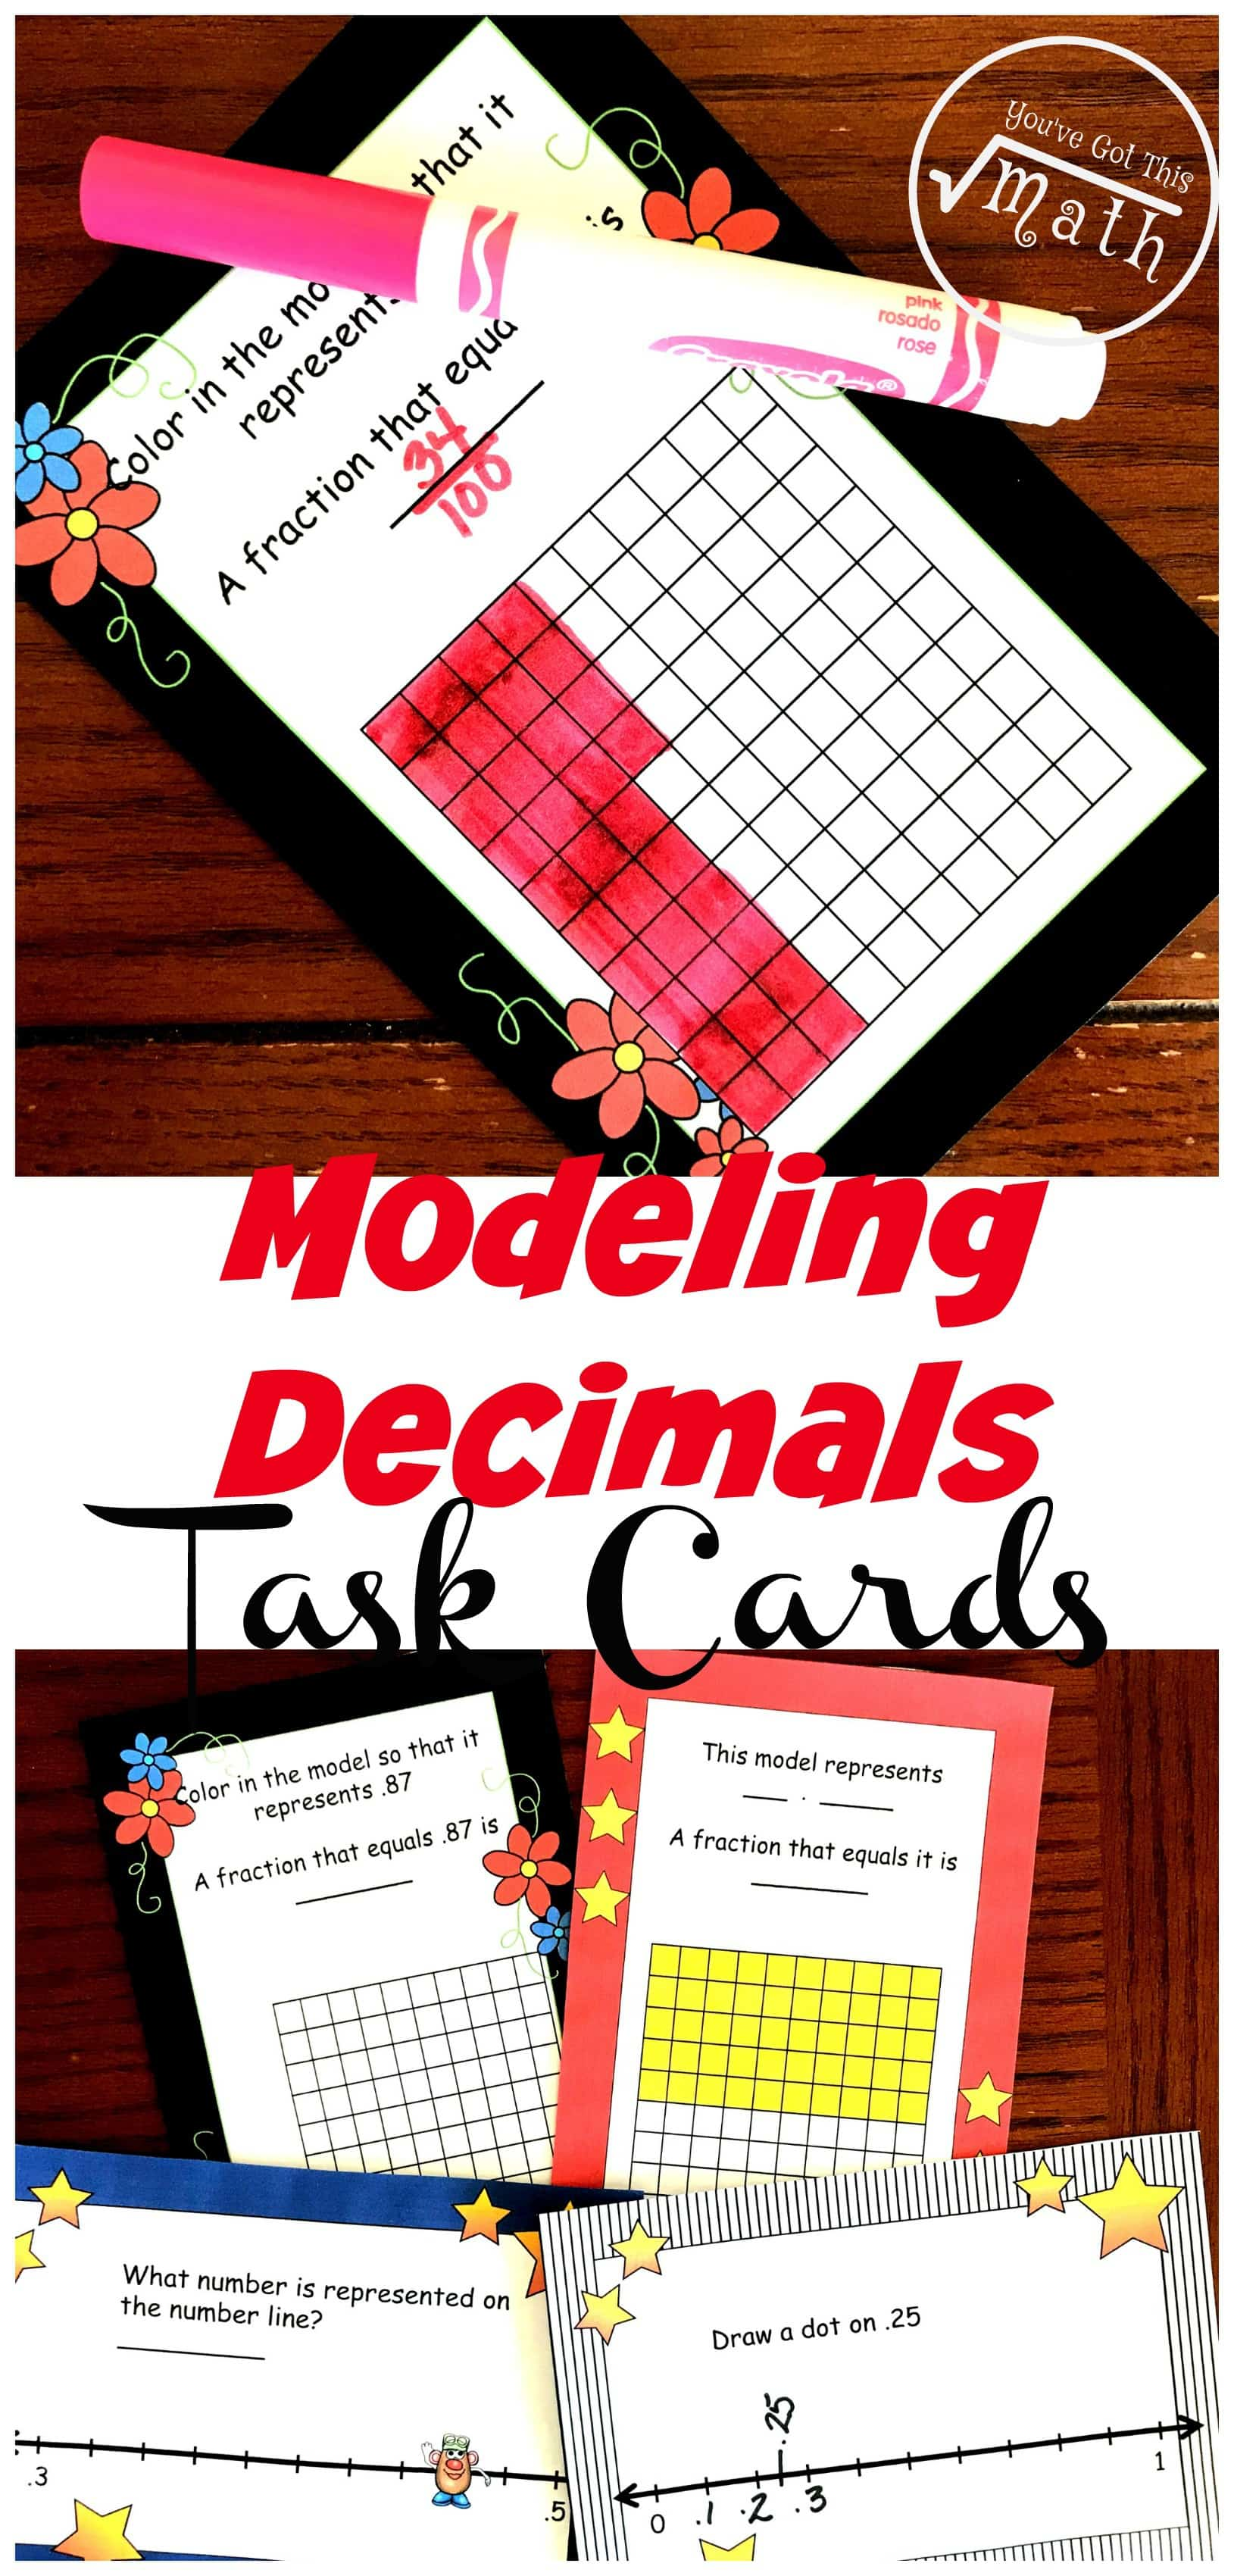 These task cards help children with modeling decimals. One set has children coloring a decimal grid to represent a decimal, while another has children figuring out the decimal represented on a decimal grid. The other two sets have children modeling decimals on number lines.